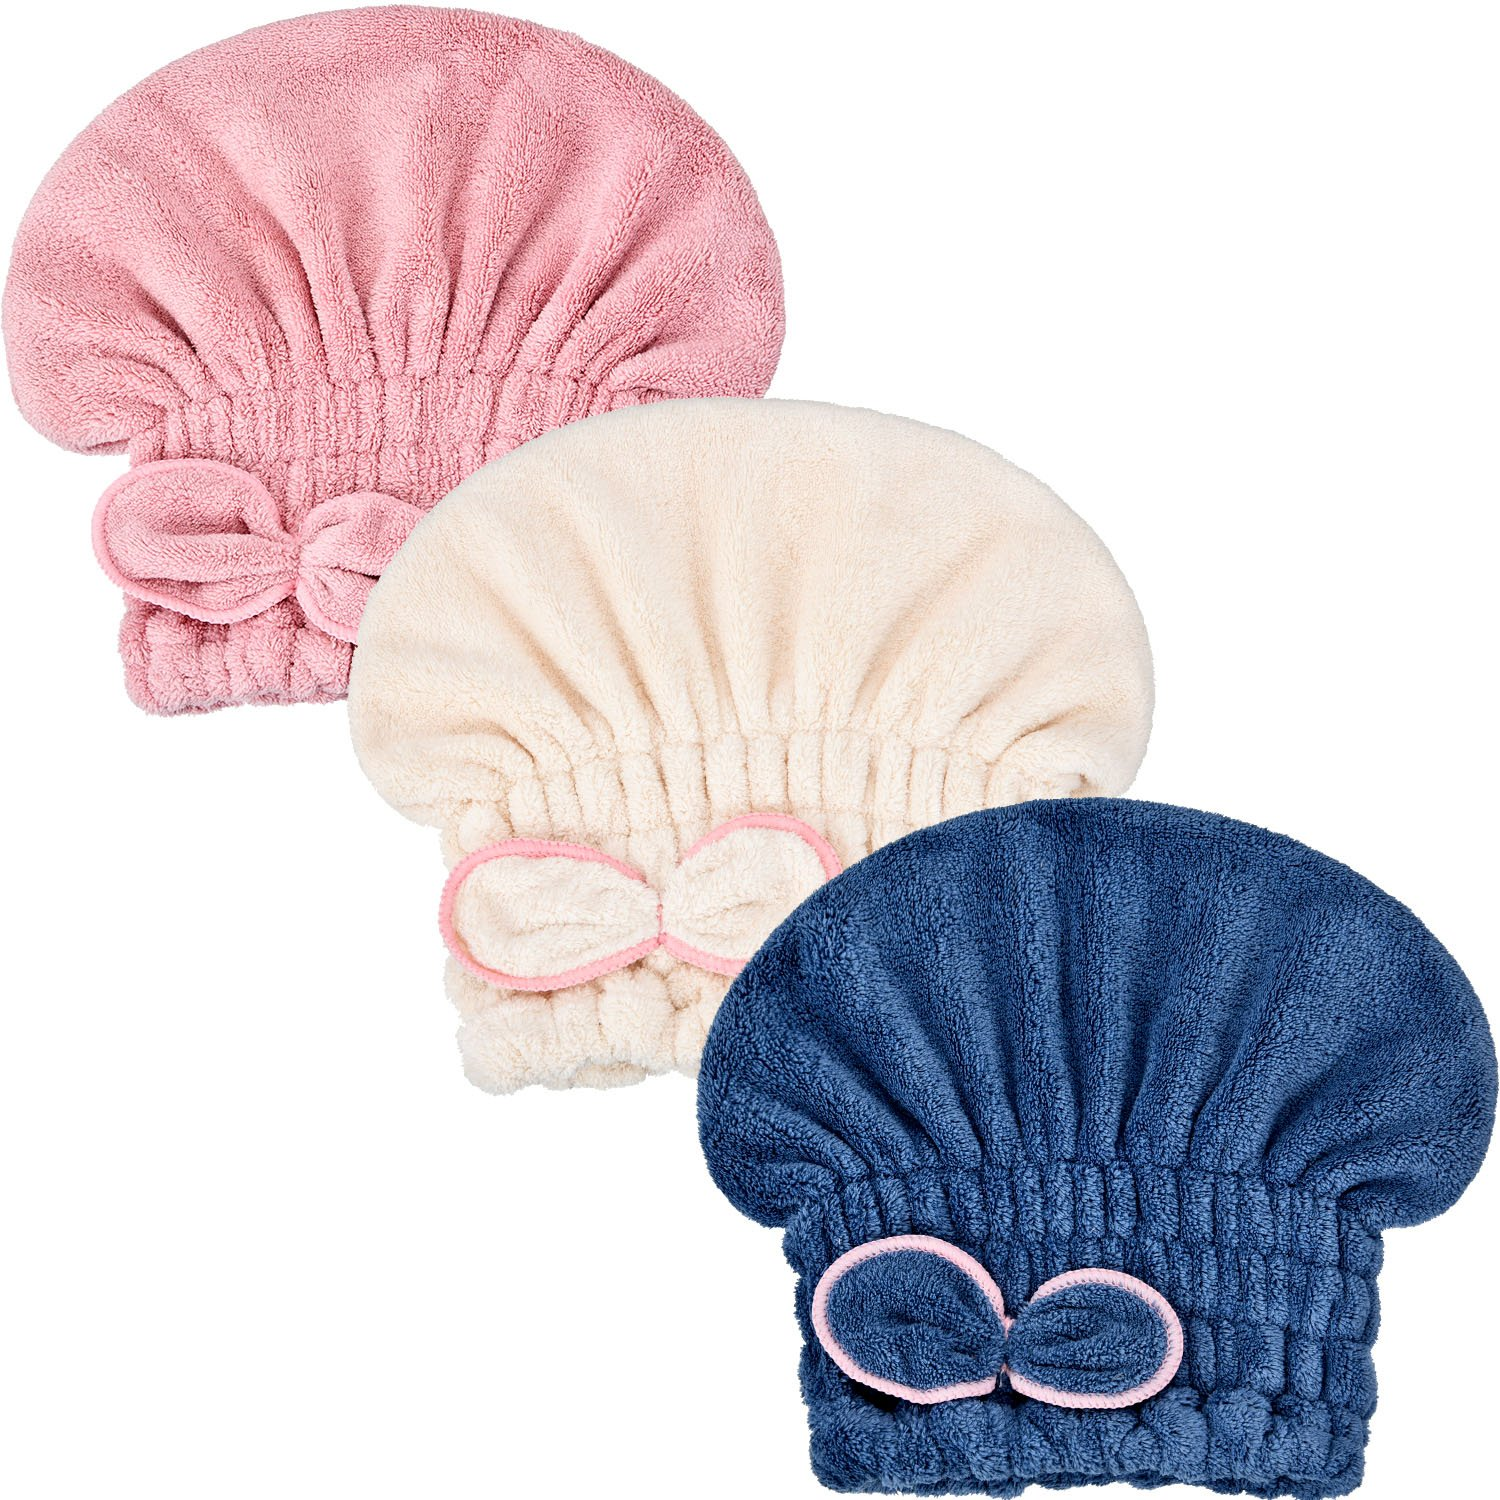 Hestya 3 Pieces Absorbent Hair Drying Caps Quickly Dry Hair Towels Elastic Microfiber Bath Wraps for Girls and Women